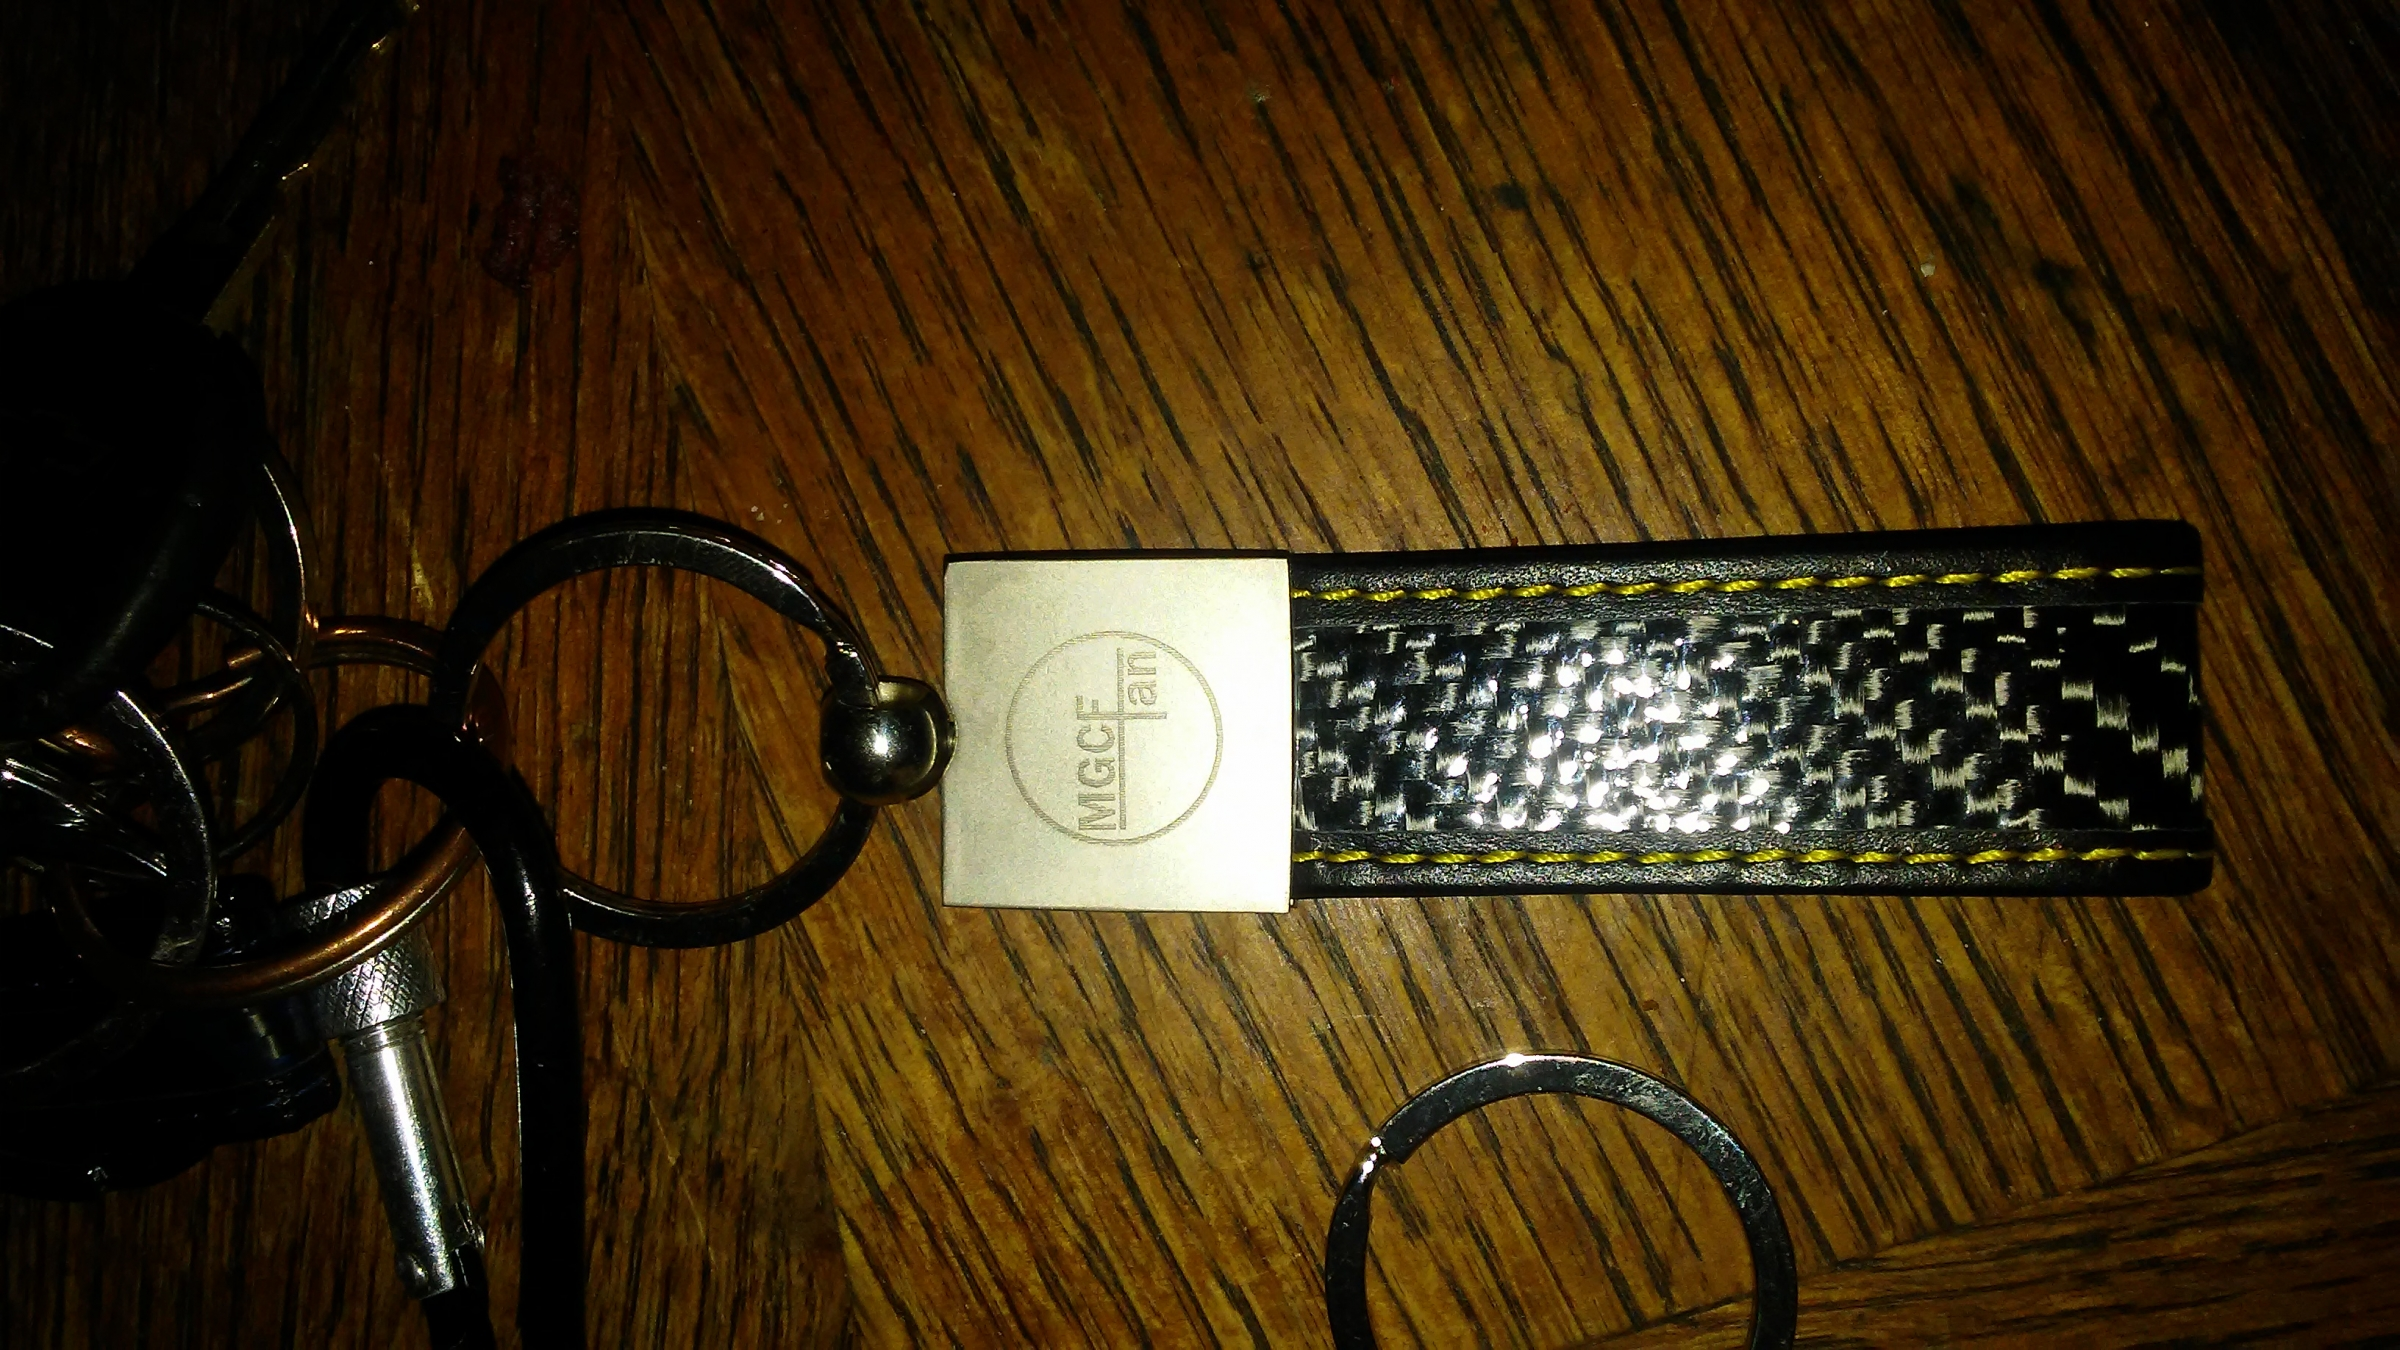 Really durable well made keychain